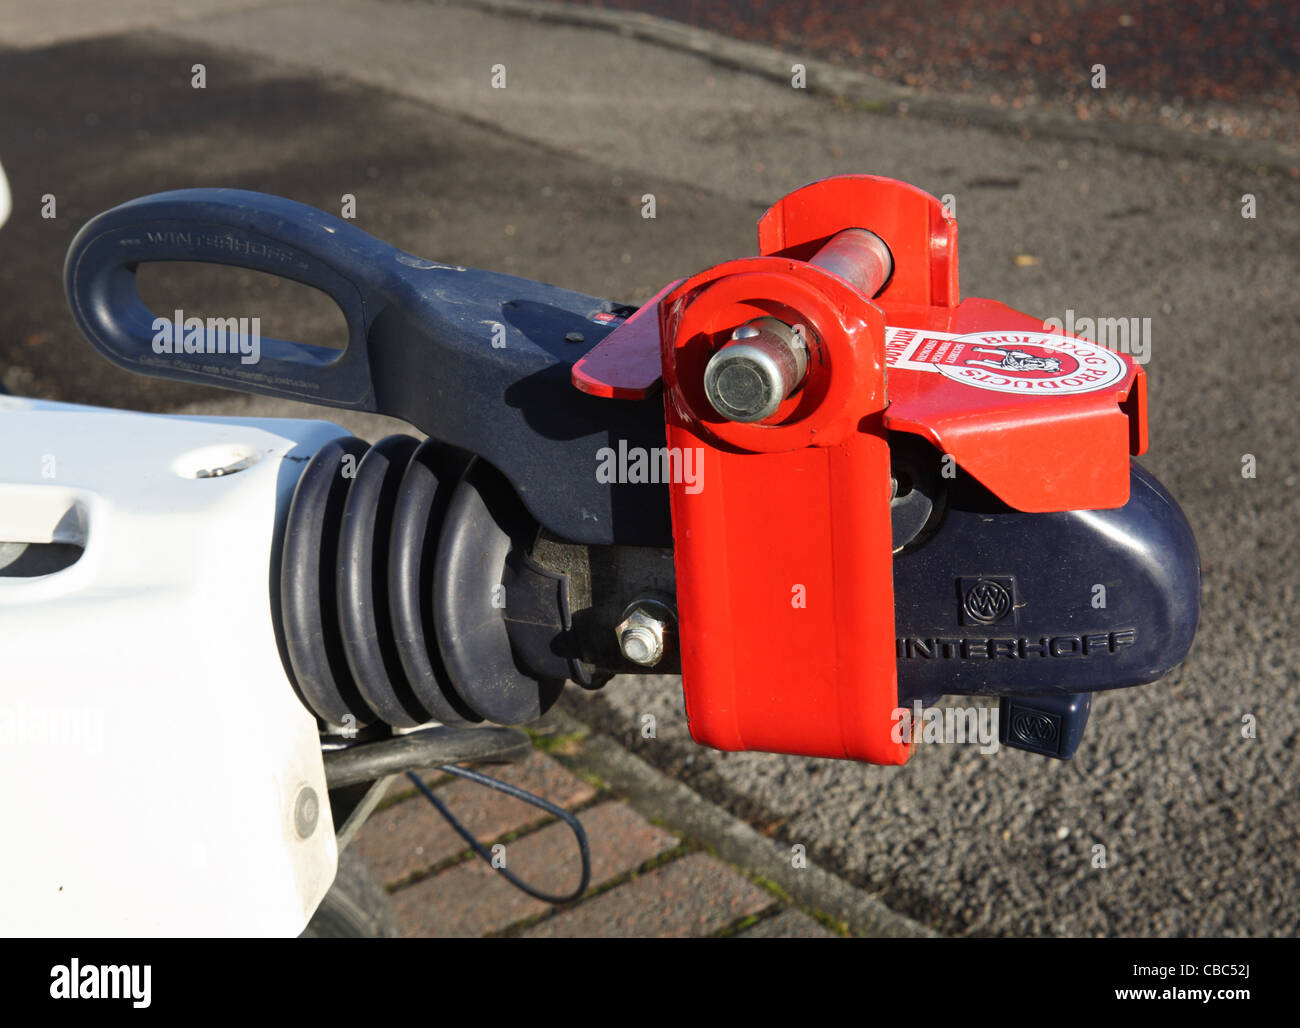 Nice Pit Bike Wiring Thin Dimarzio Switch Shaped Free Technical Service Bulletins Online Di Marizo Youthful Strat Wiring Bridge Tone WhiteAlarm And Remote Start Installation Caravan Or Trailer Security Hitch Lock Made By Bulldog Stock Photo ..